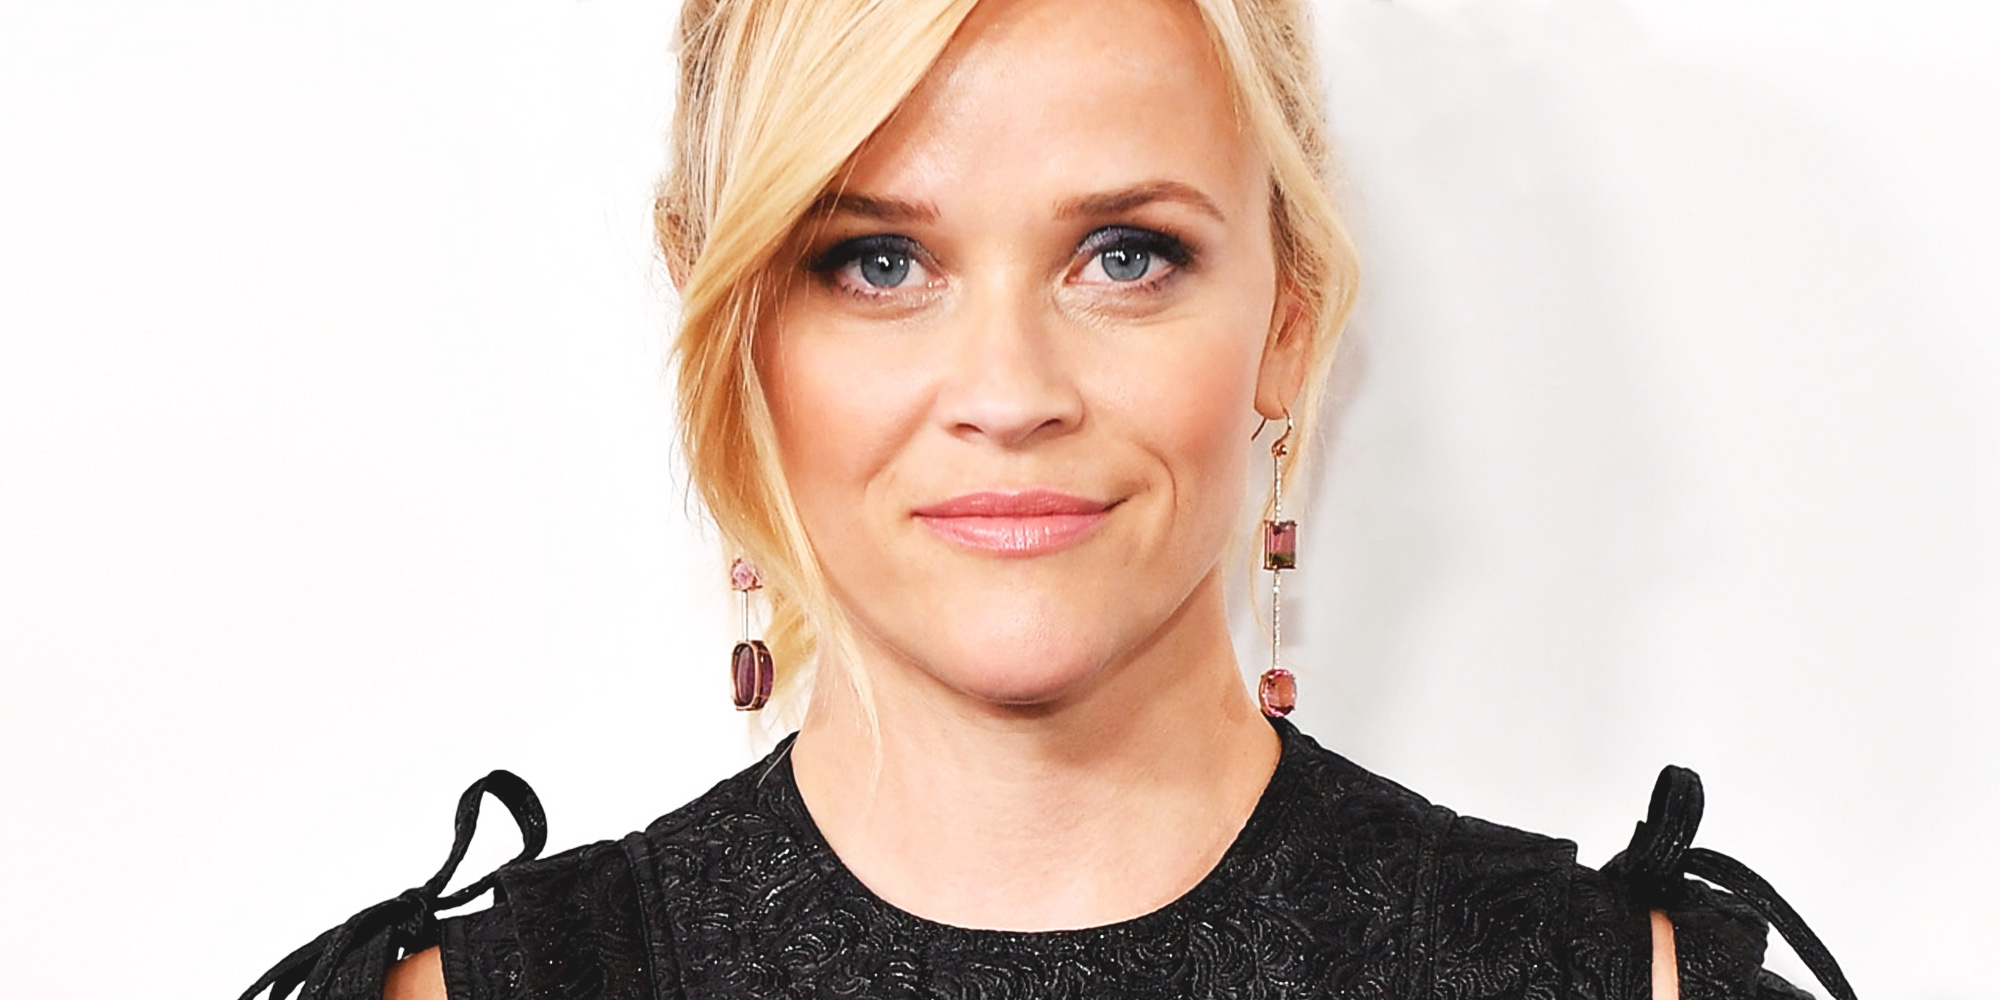 elle-reese-witherspoon-shares-assualt-story-2-1508264551